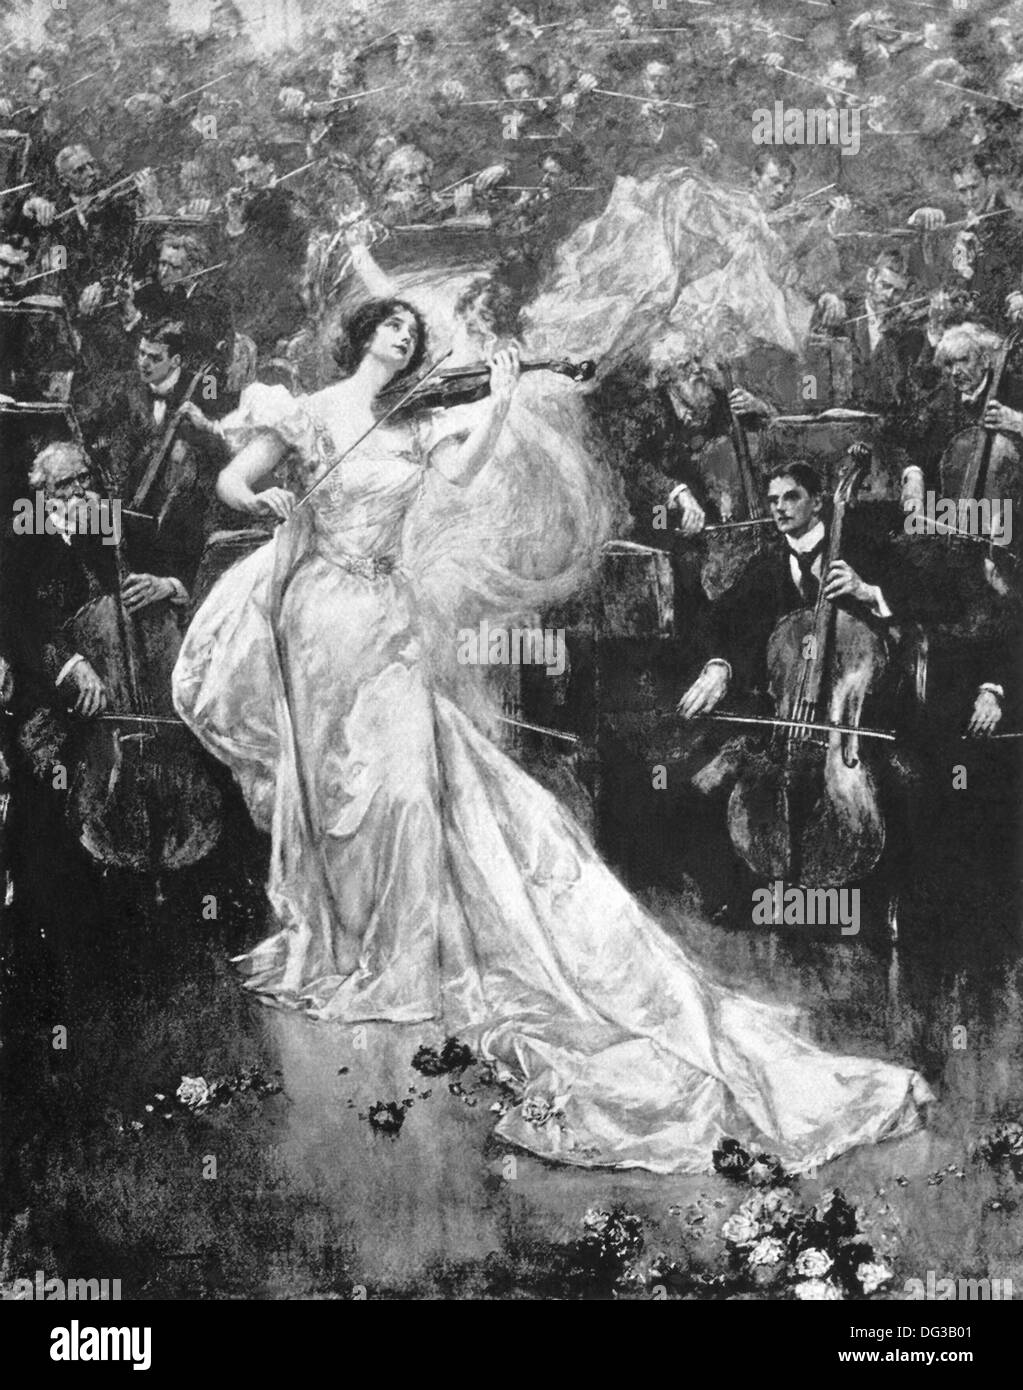 This illustration appeared in London-based Penrose Pictorial Annual of 1900. This image show a woman playing a violin concerto. - Stock Image